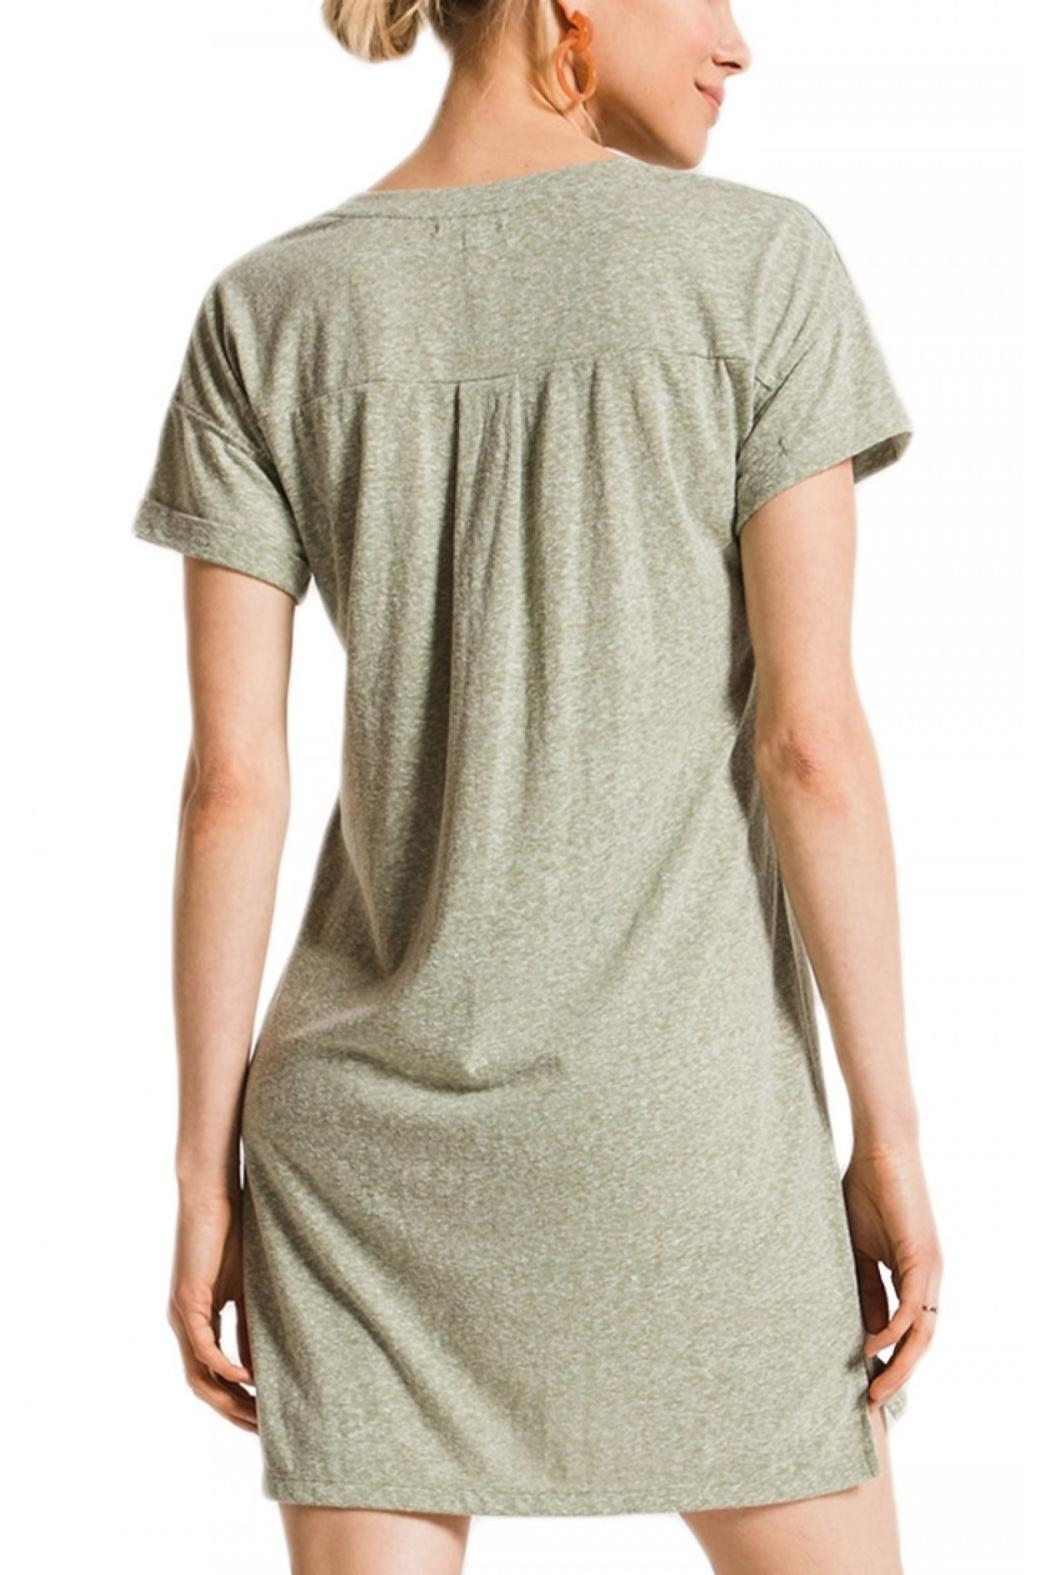 z supply Triblend T Shirt Dress - Front Full Image